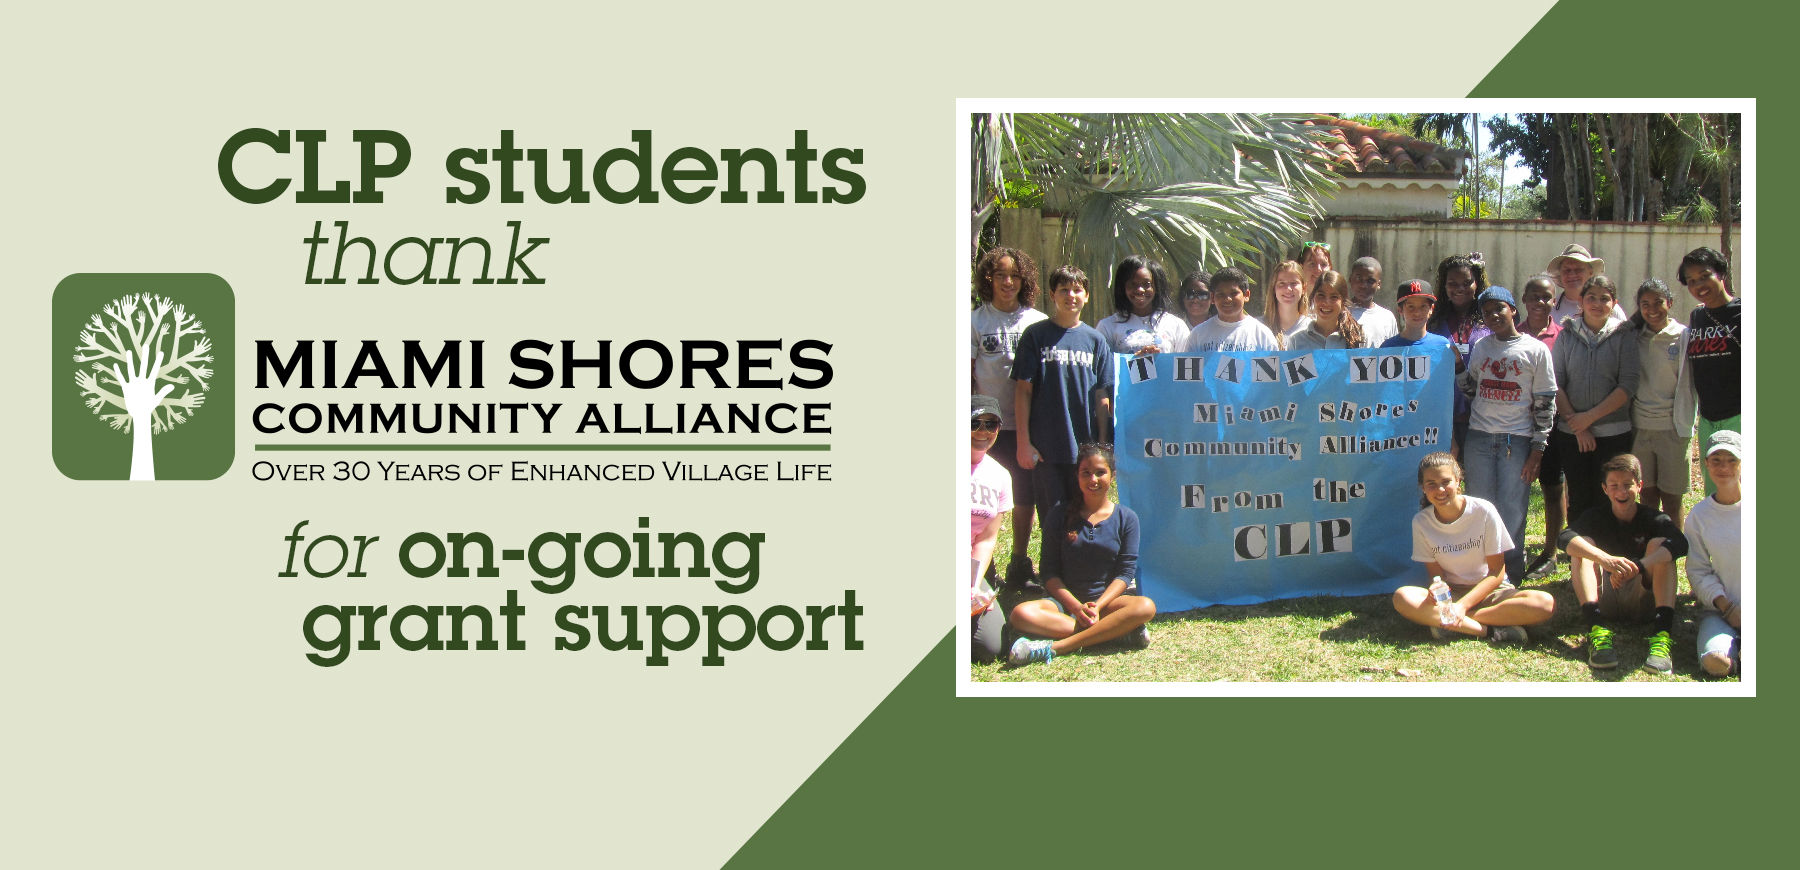 CLP students thank Miami Shores Community Alliance for on-going grant support